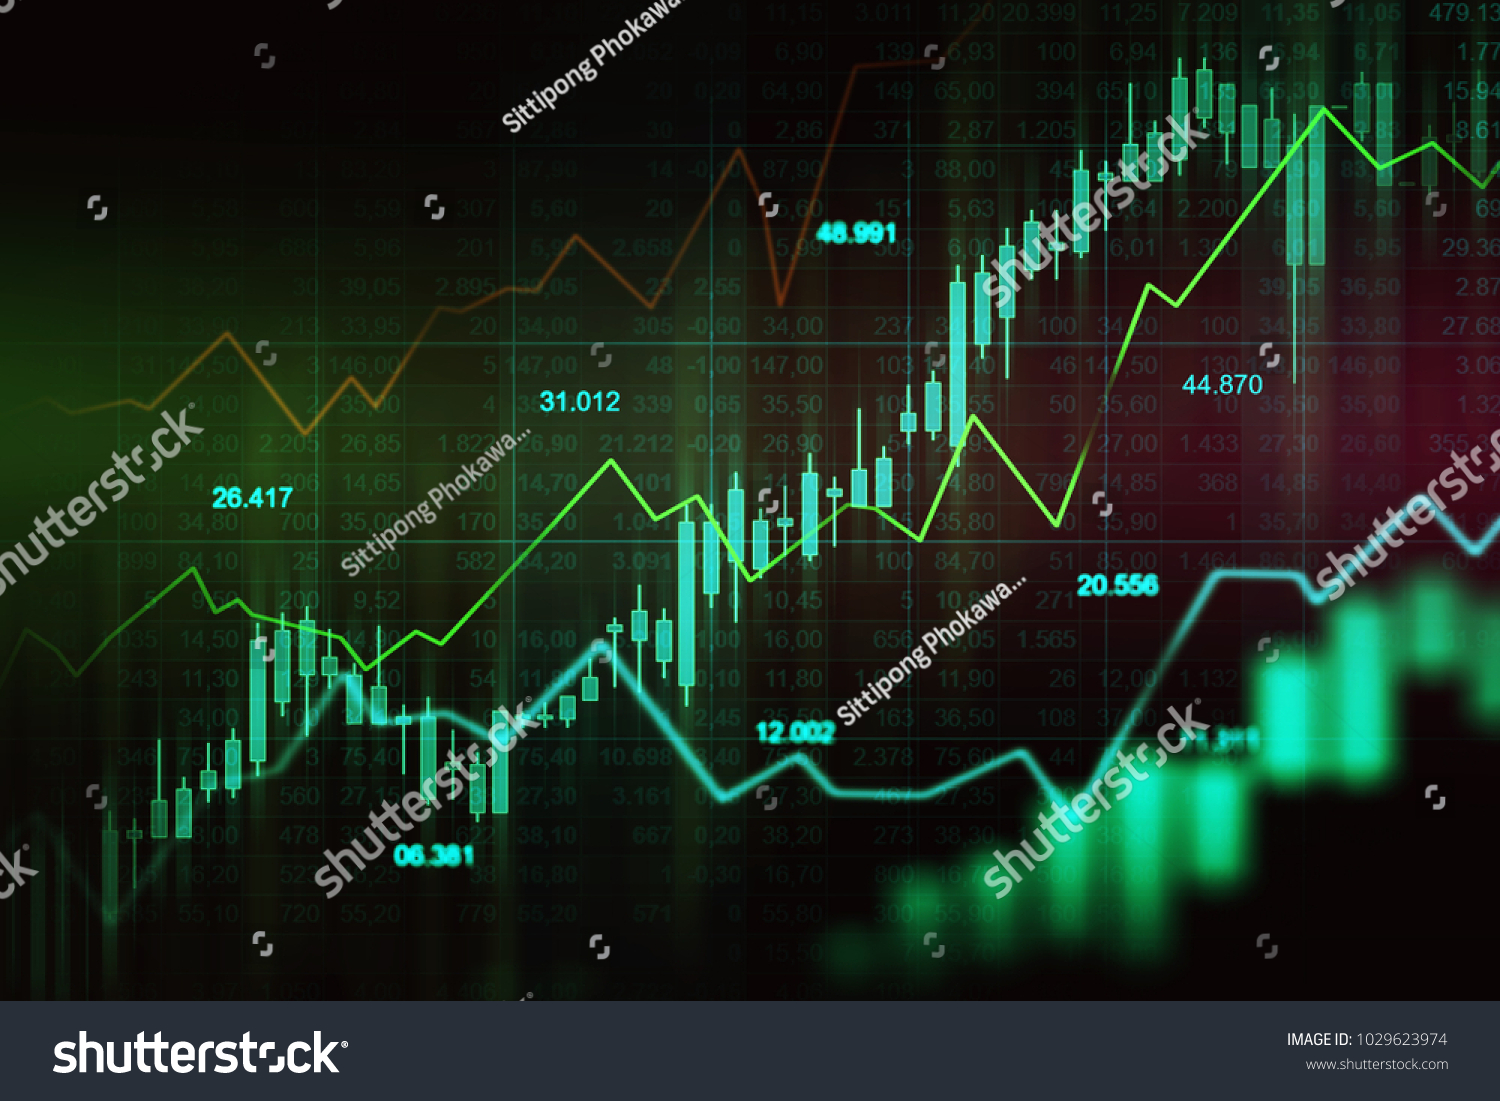 stock market or forex trading graph in graphic concept suitable for